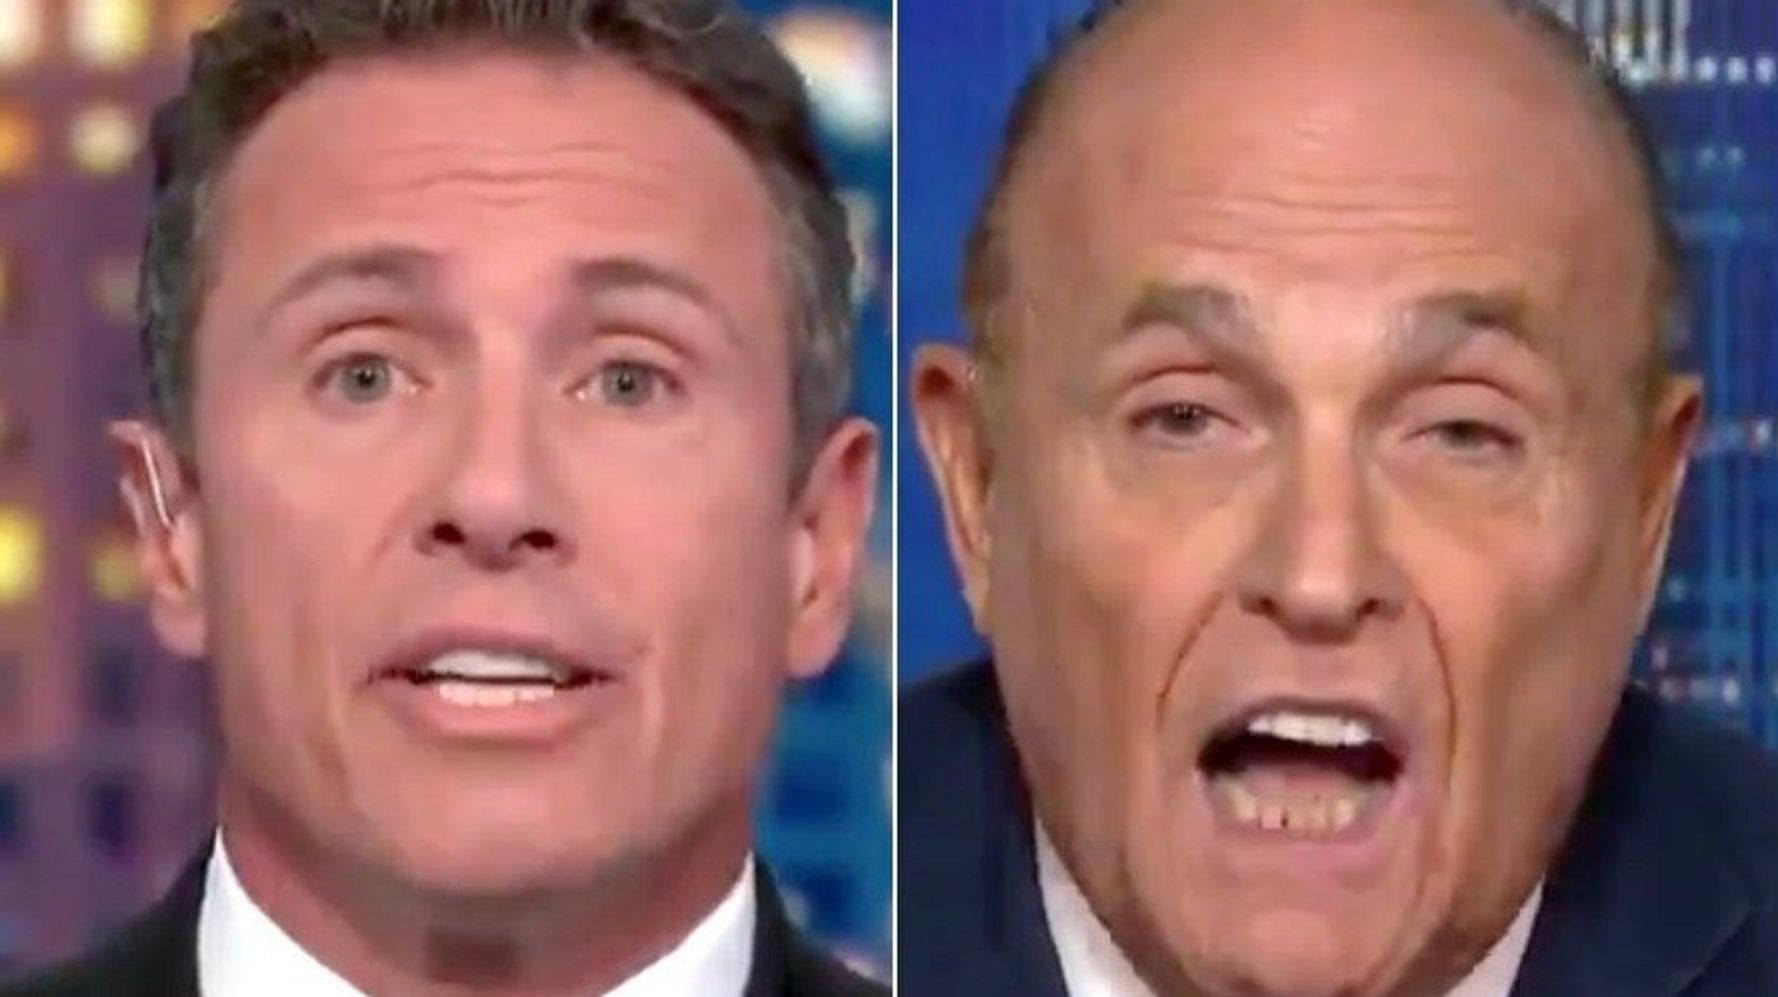 Westlake Legal Group 5d8453b92100005b00e46db7 Rudy Giuliani Melts Down On Live TV In Bizarre Chris Cuomo Interview